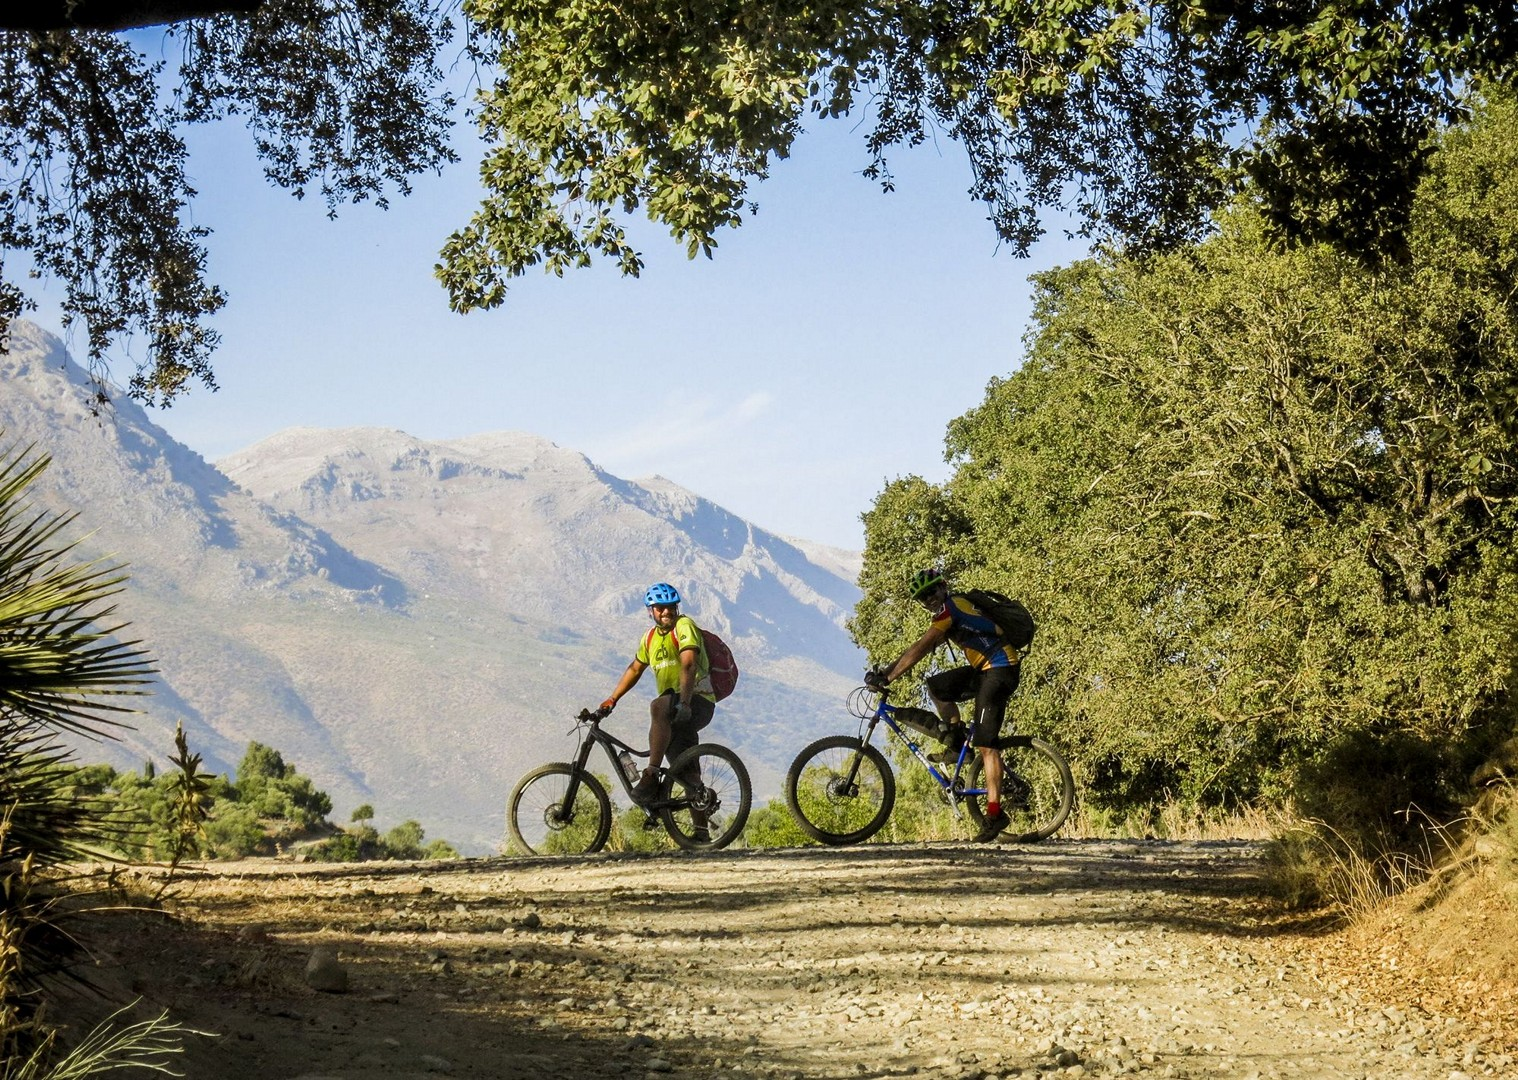 fast-mountain-biking-singletrack-spain-holiday-saddle-skedaddle.jpg - Spain - Awesome Andalucia - Guided Mountain Bike Holiday - Mountain Biking